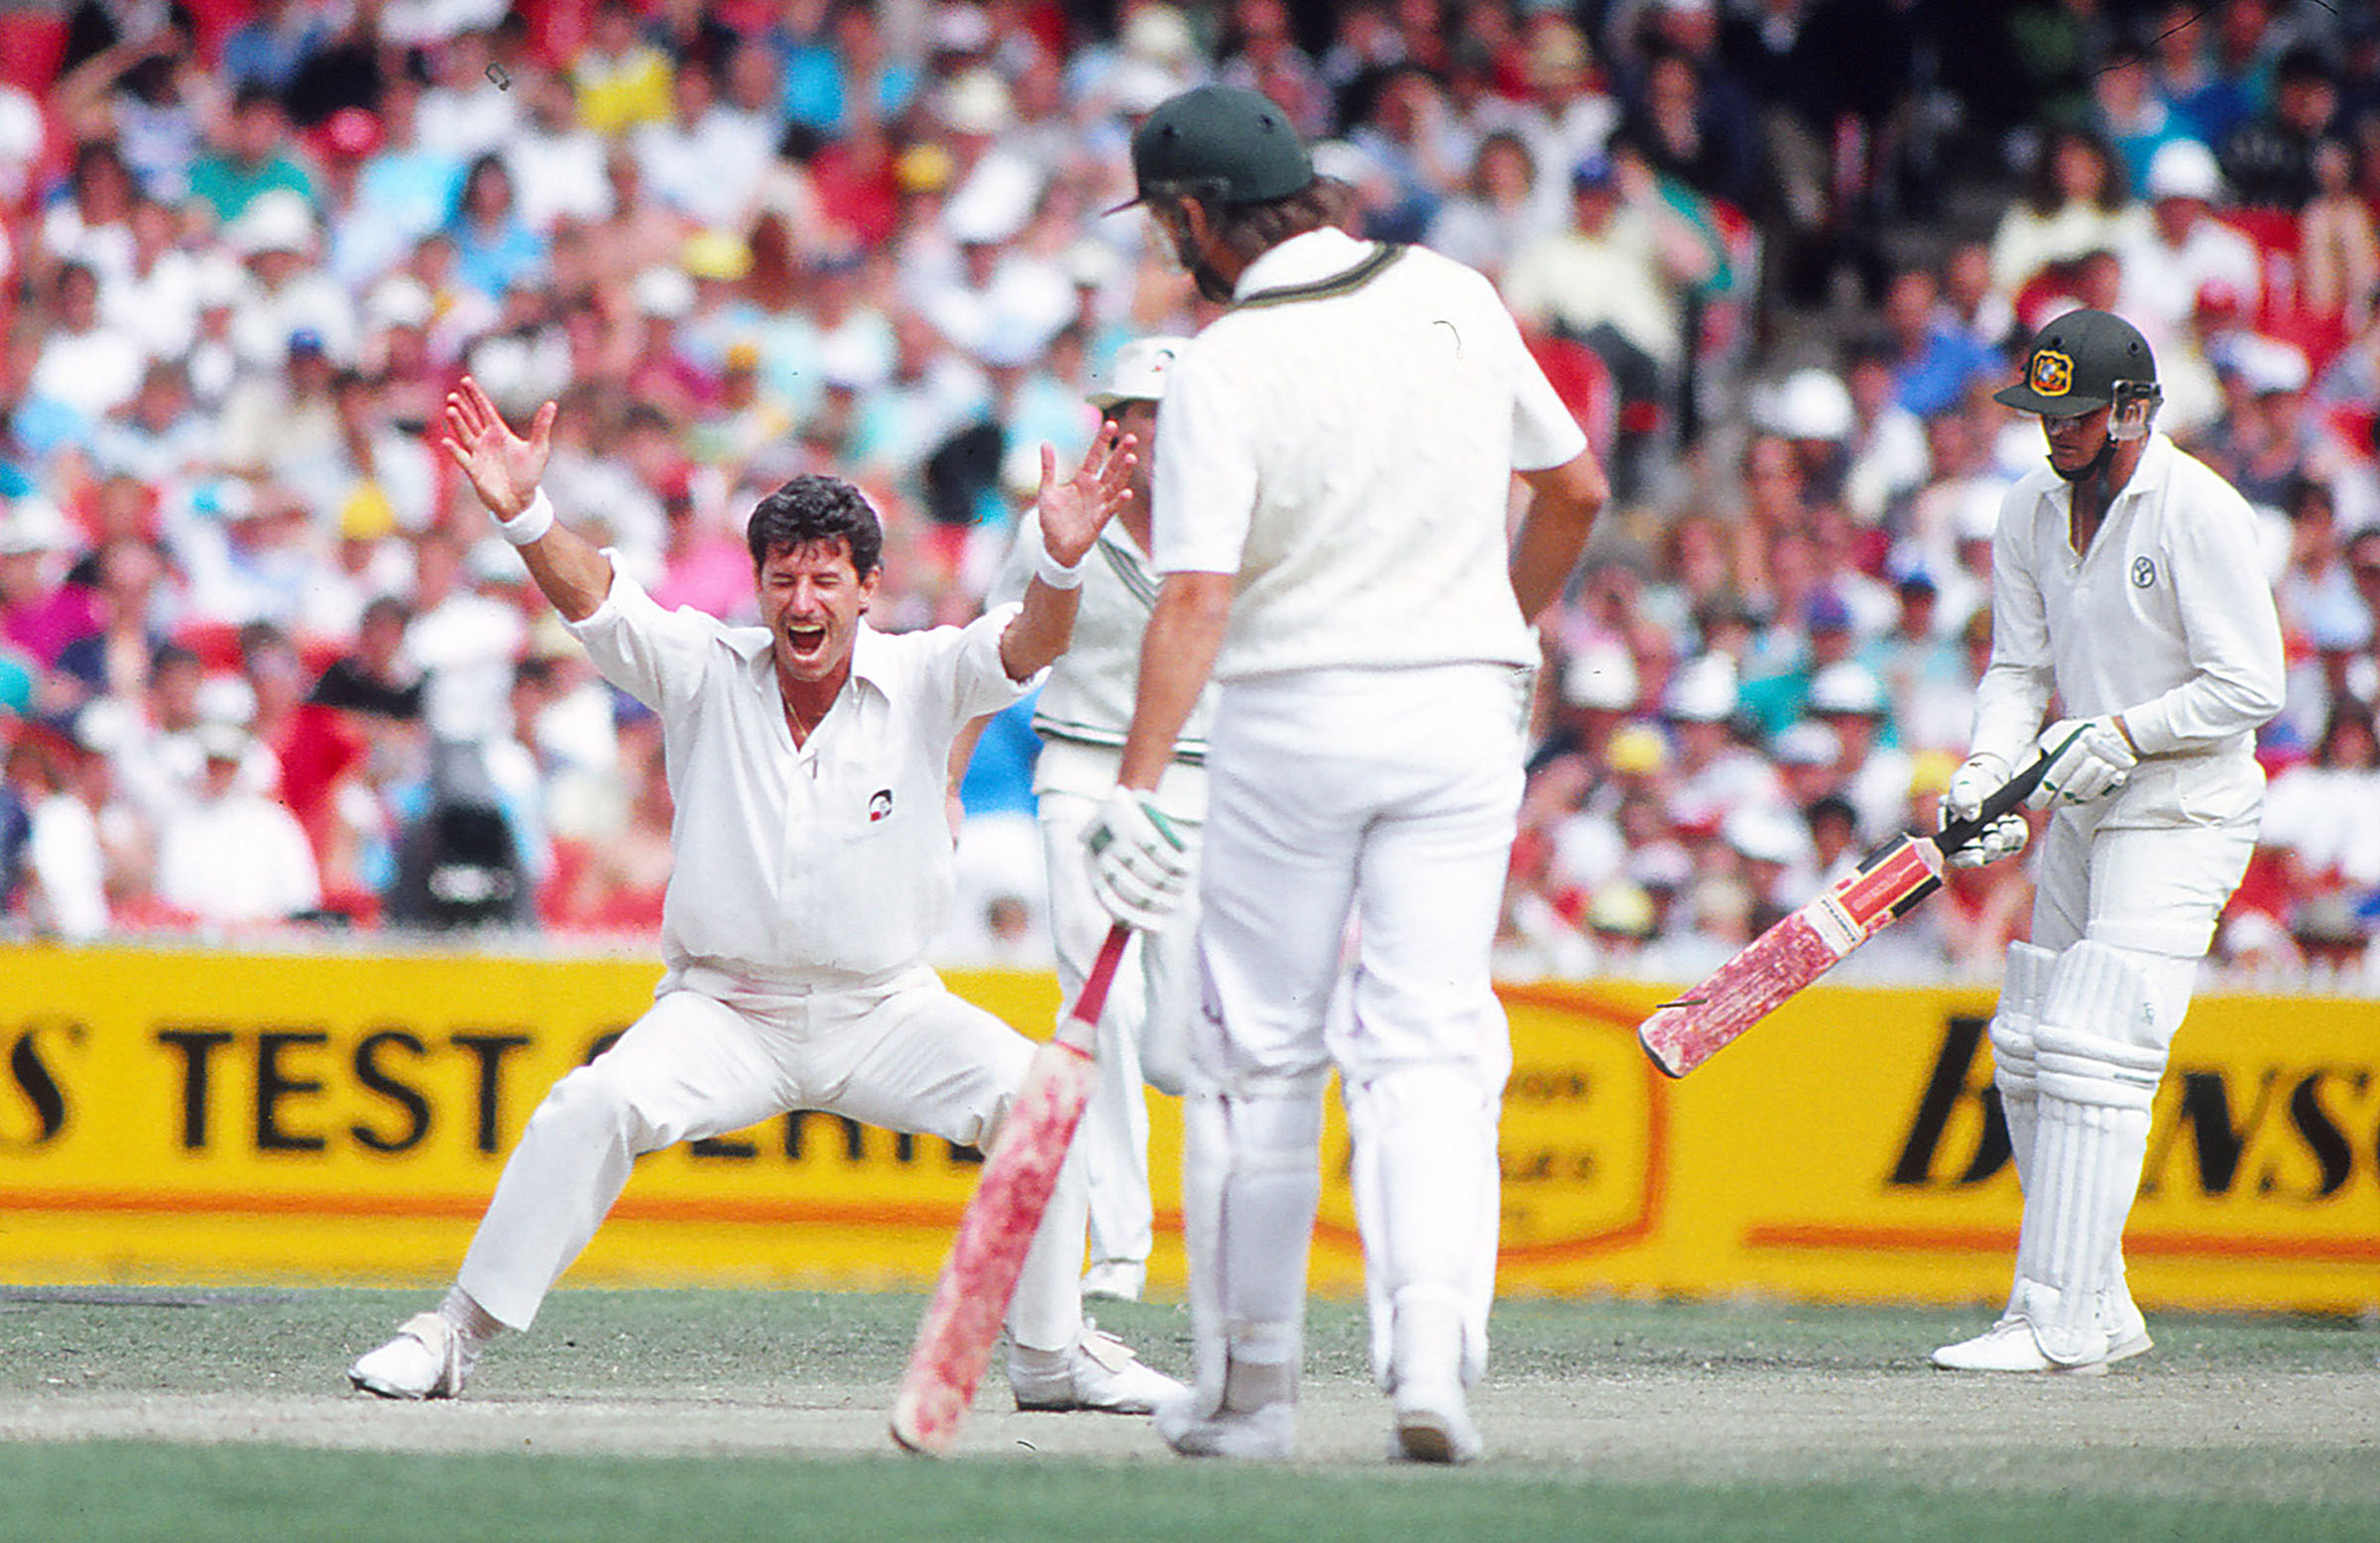 Hadlee tormented Australia during his career // Getty